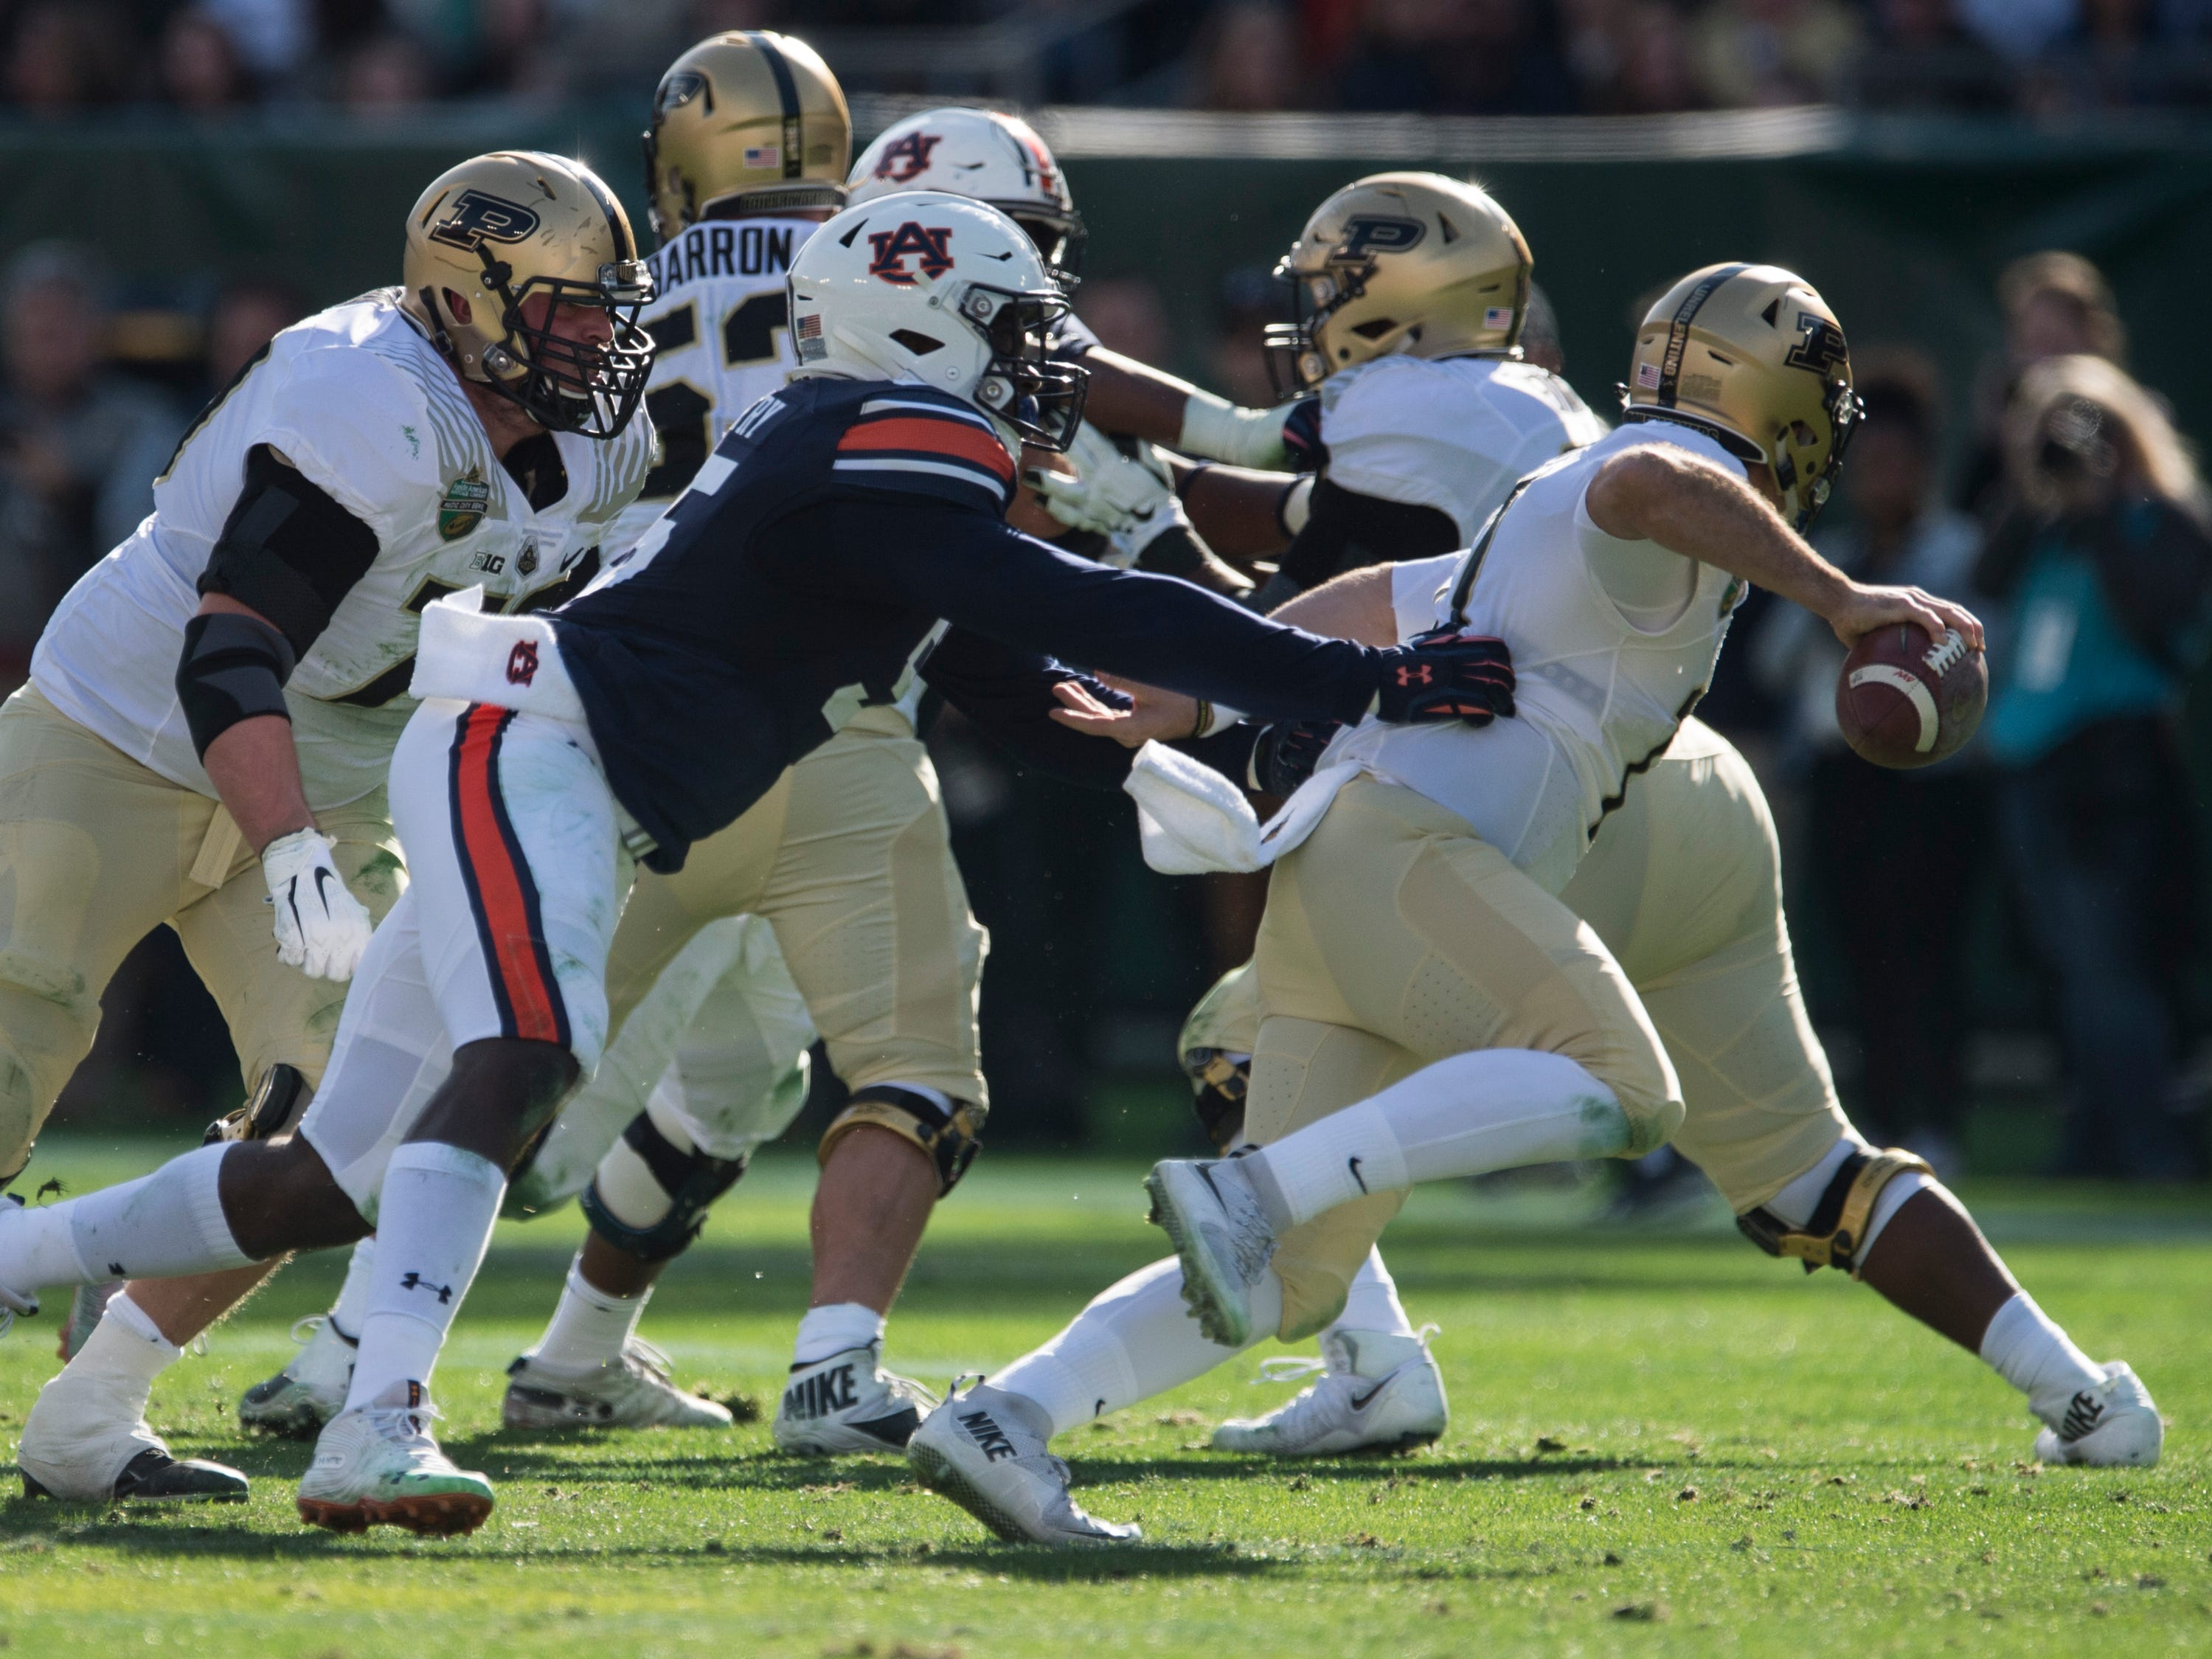 Auburn defesnive lineman T.D. Moultry (55) chases Purdue quarterback David Blough (11) in the backfield during the Music City Bowl at Nissan Stadium in Nashville, Tenn., on Friday, Dec. 28, 2018. Auburn defeated Purdue 63-14.